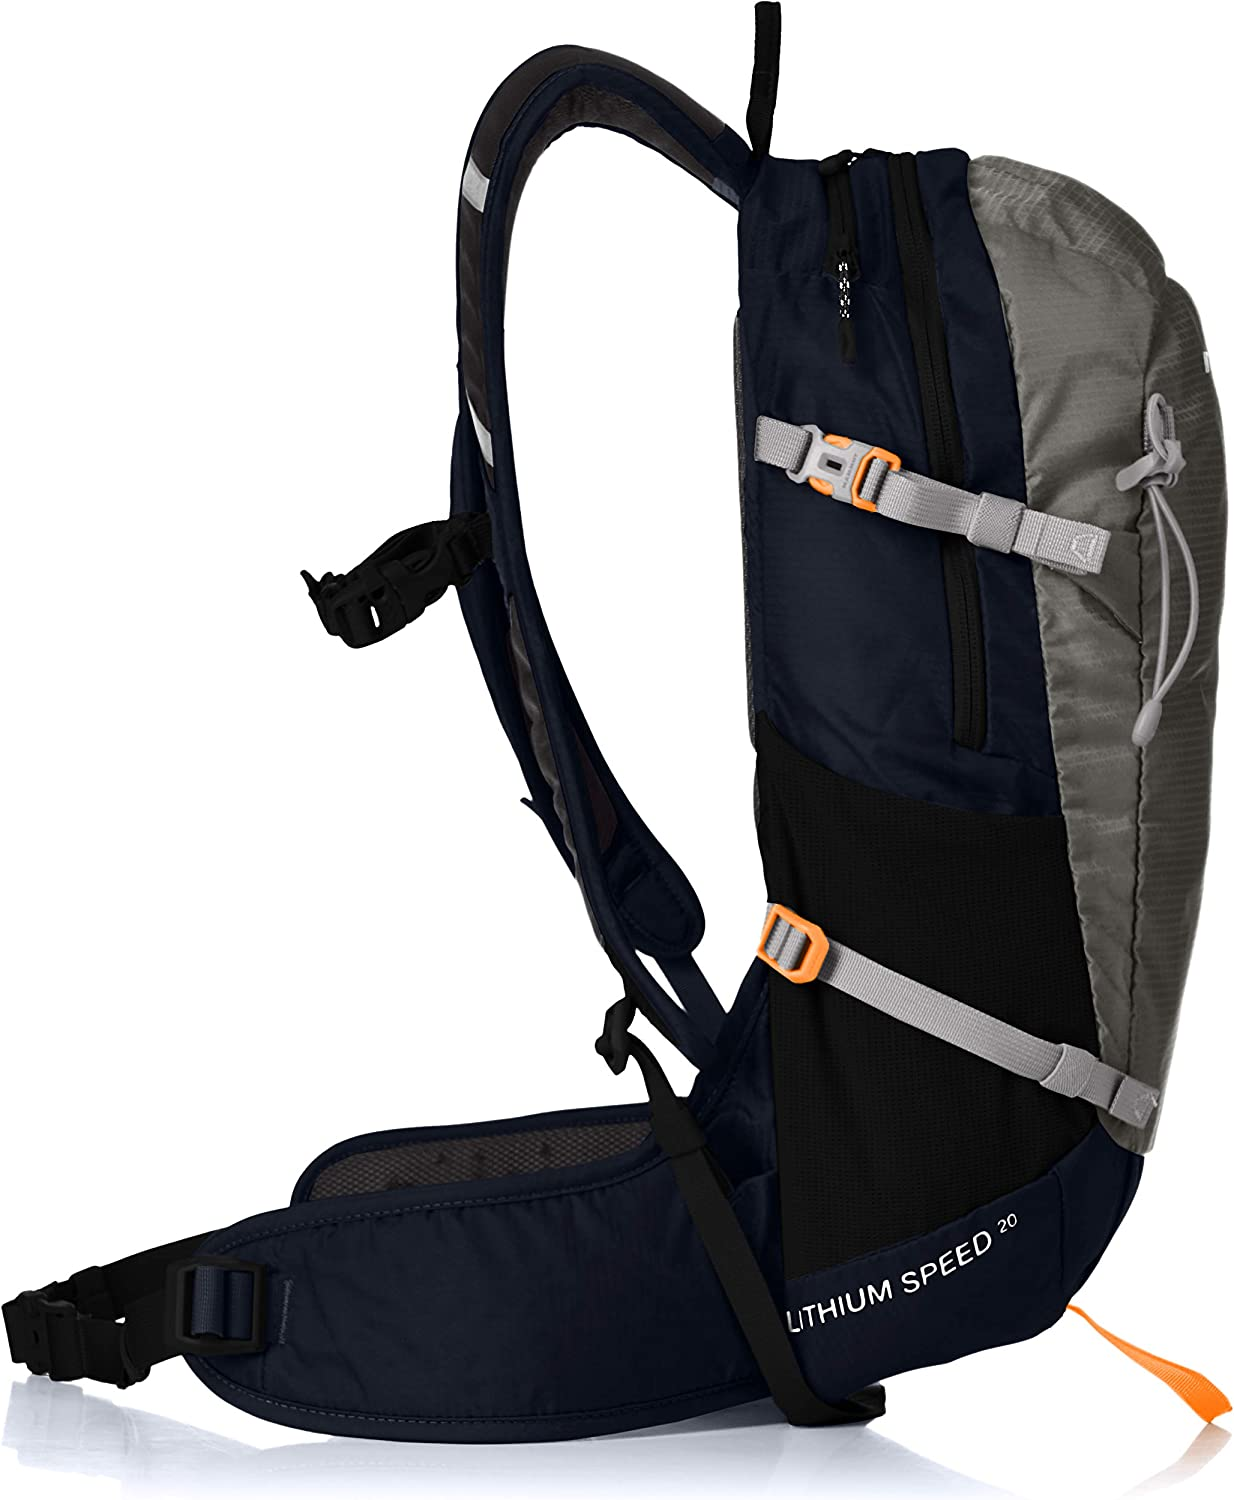 Unisex Adults/' Backpack Mammut Lithium Speed